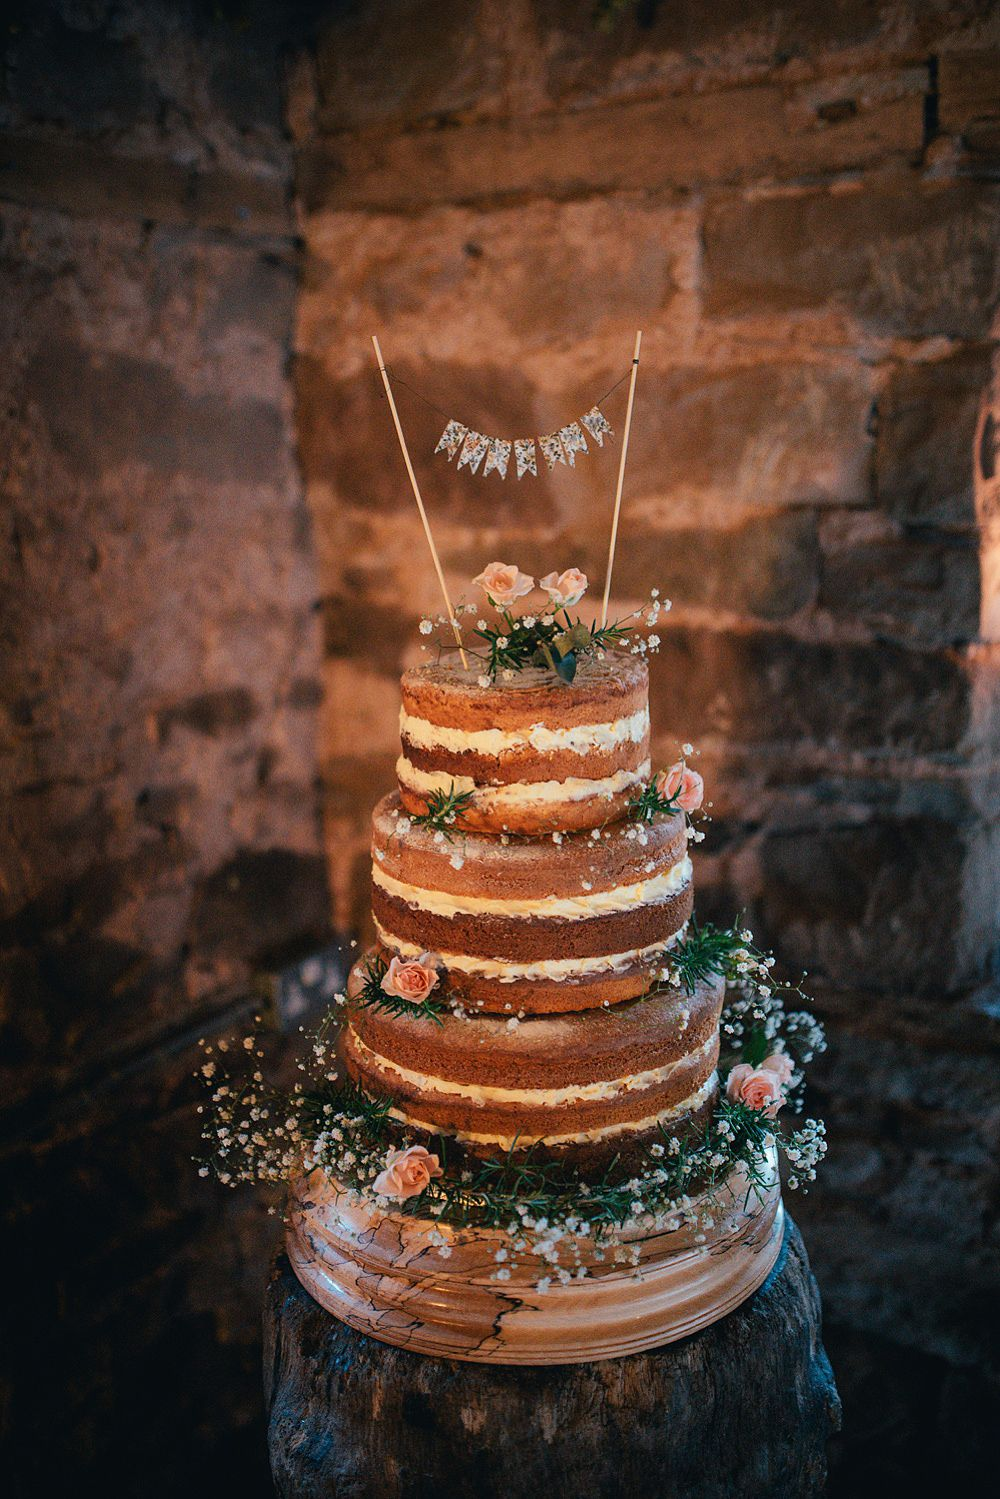 A Justin Alexander Bridal Gown For An Autumn Wedding At Lyde Court With Coral Rose Bouquet And Naked Cake Bonfire By Lucy Greenhill